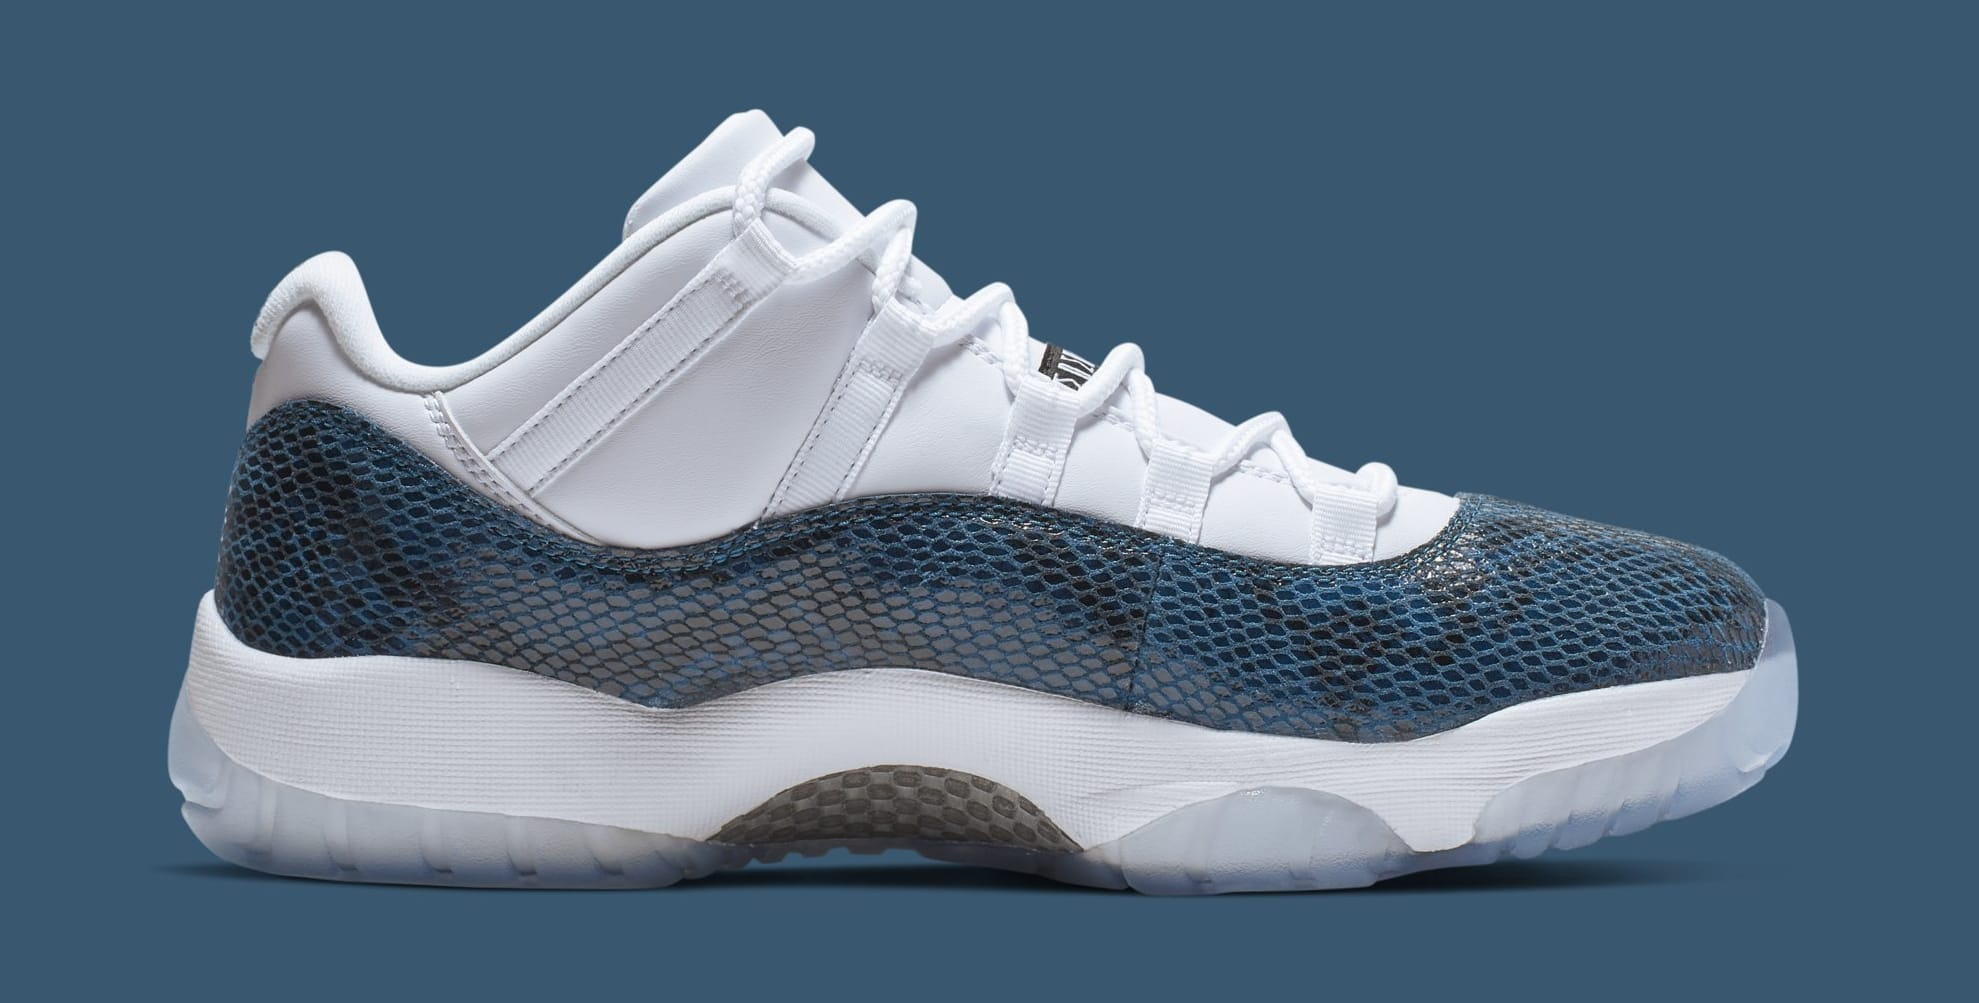 4a1163c8e360 Image via Nike Air Jordan 11 Low  Blue Snakeskin  CD6846-102 (Medial)